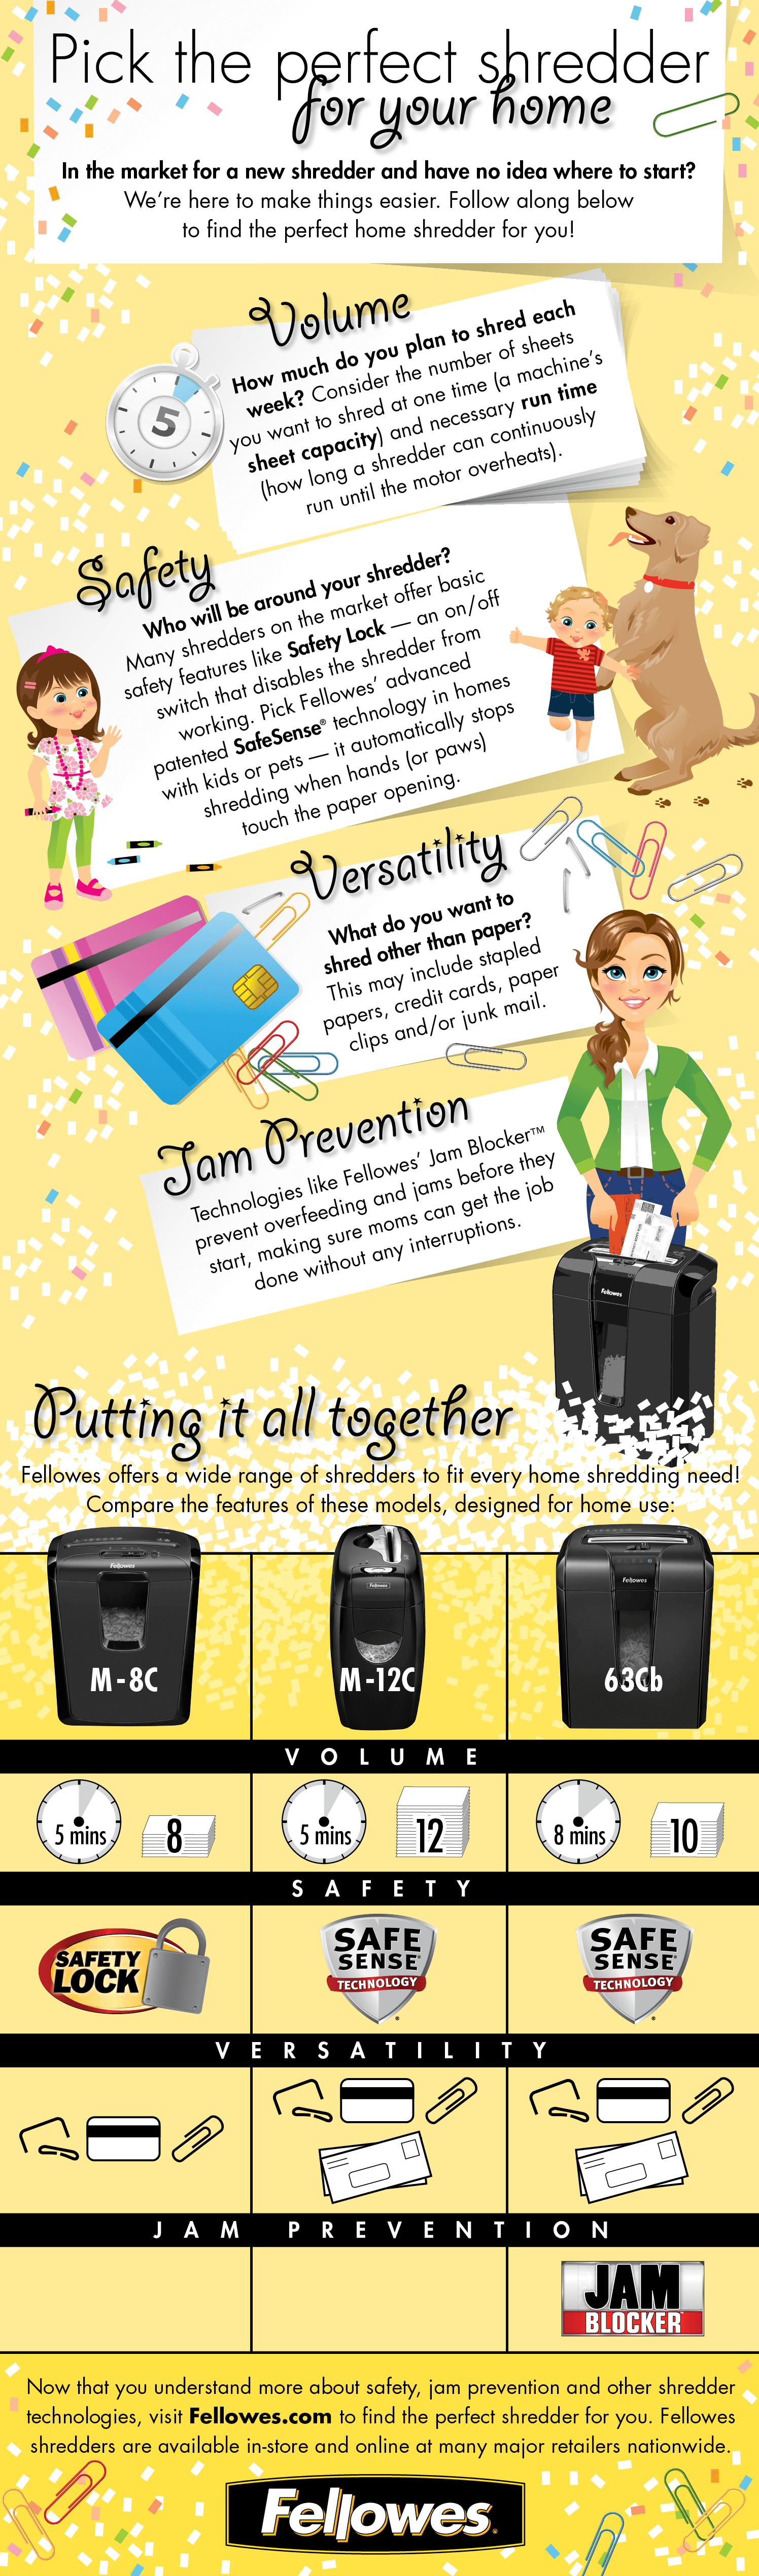 dtd fellowes home infographic image